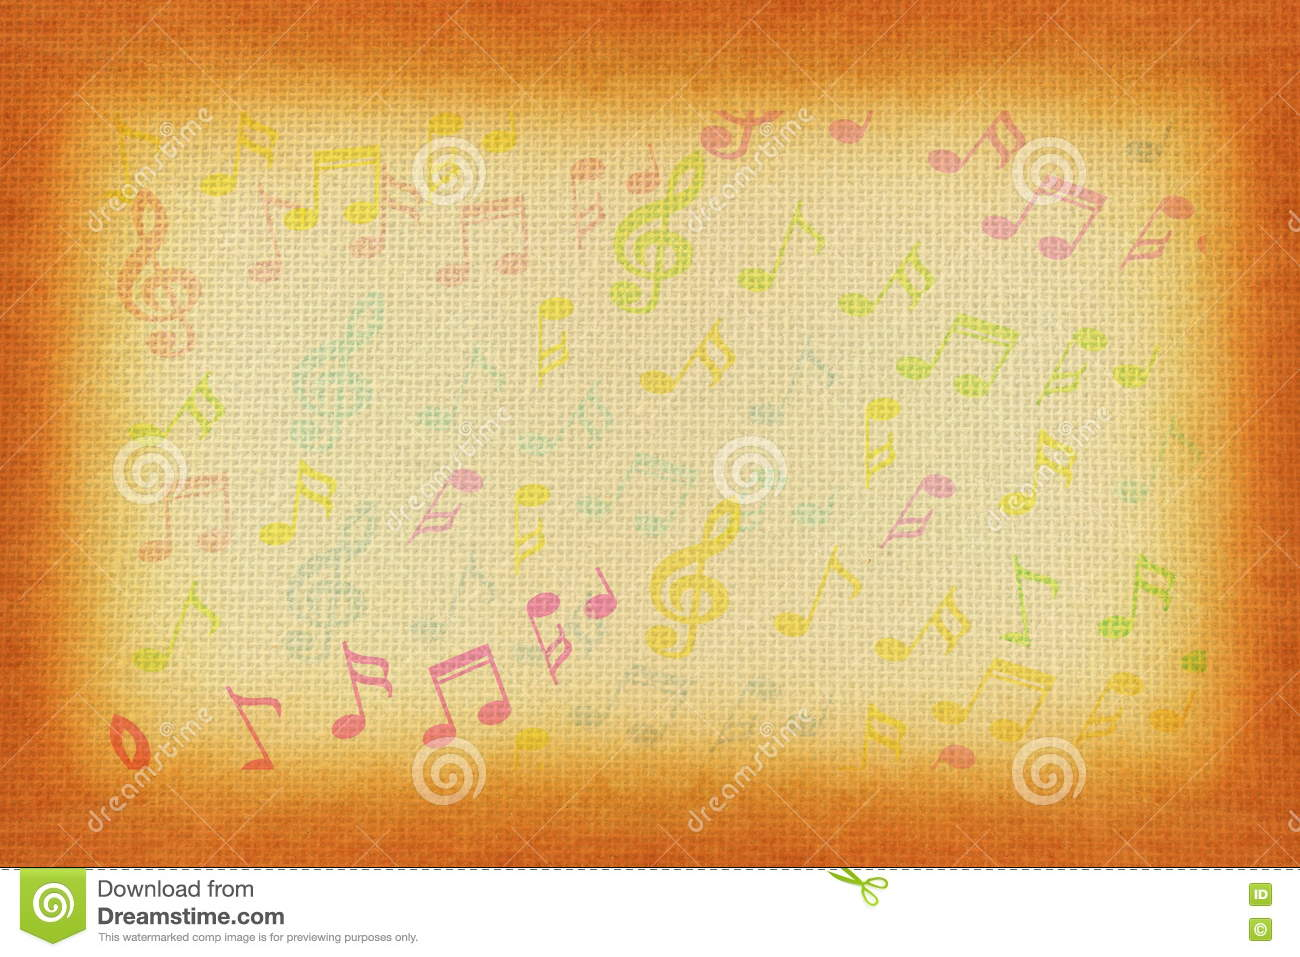 Colorful Music Notes Stock Images - Download 1,015 Photos